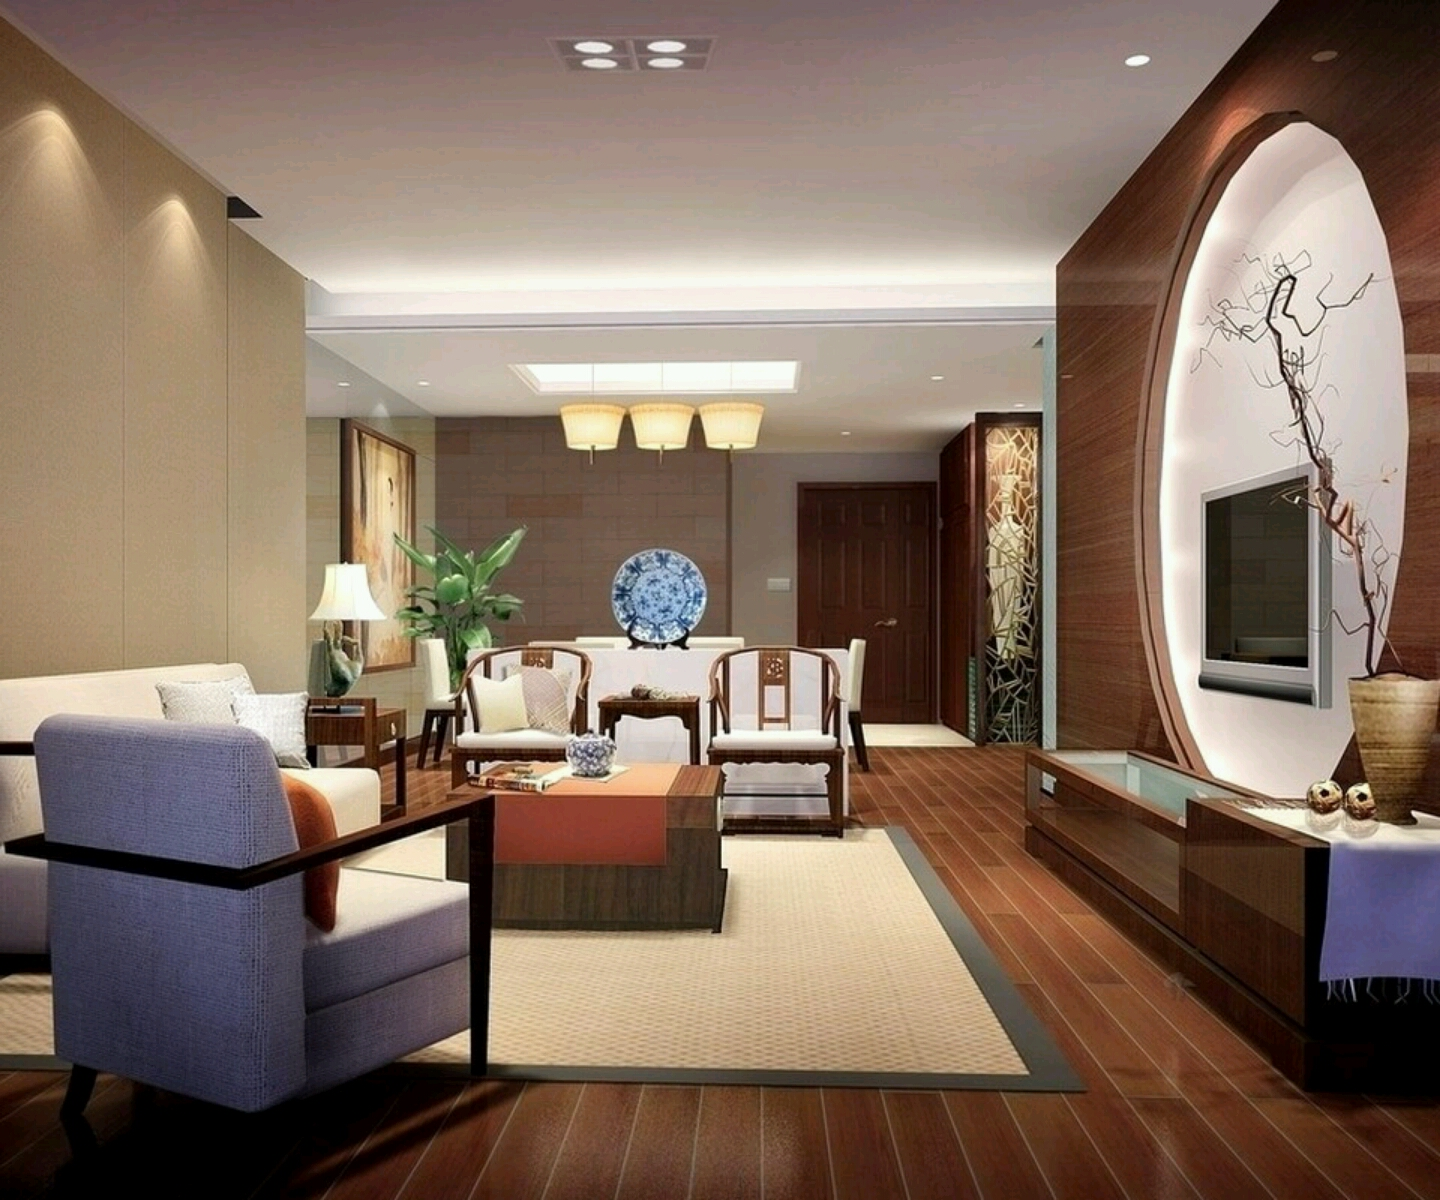 Luxury homes interior decoration living room designs ideas Inside house living room